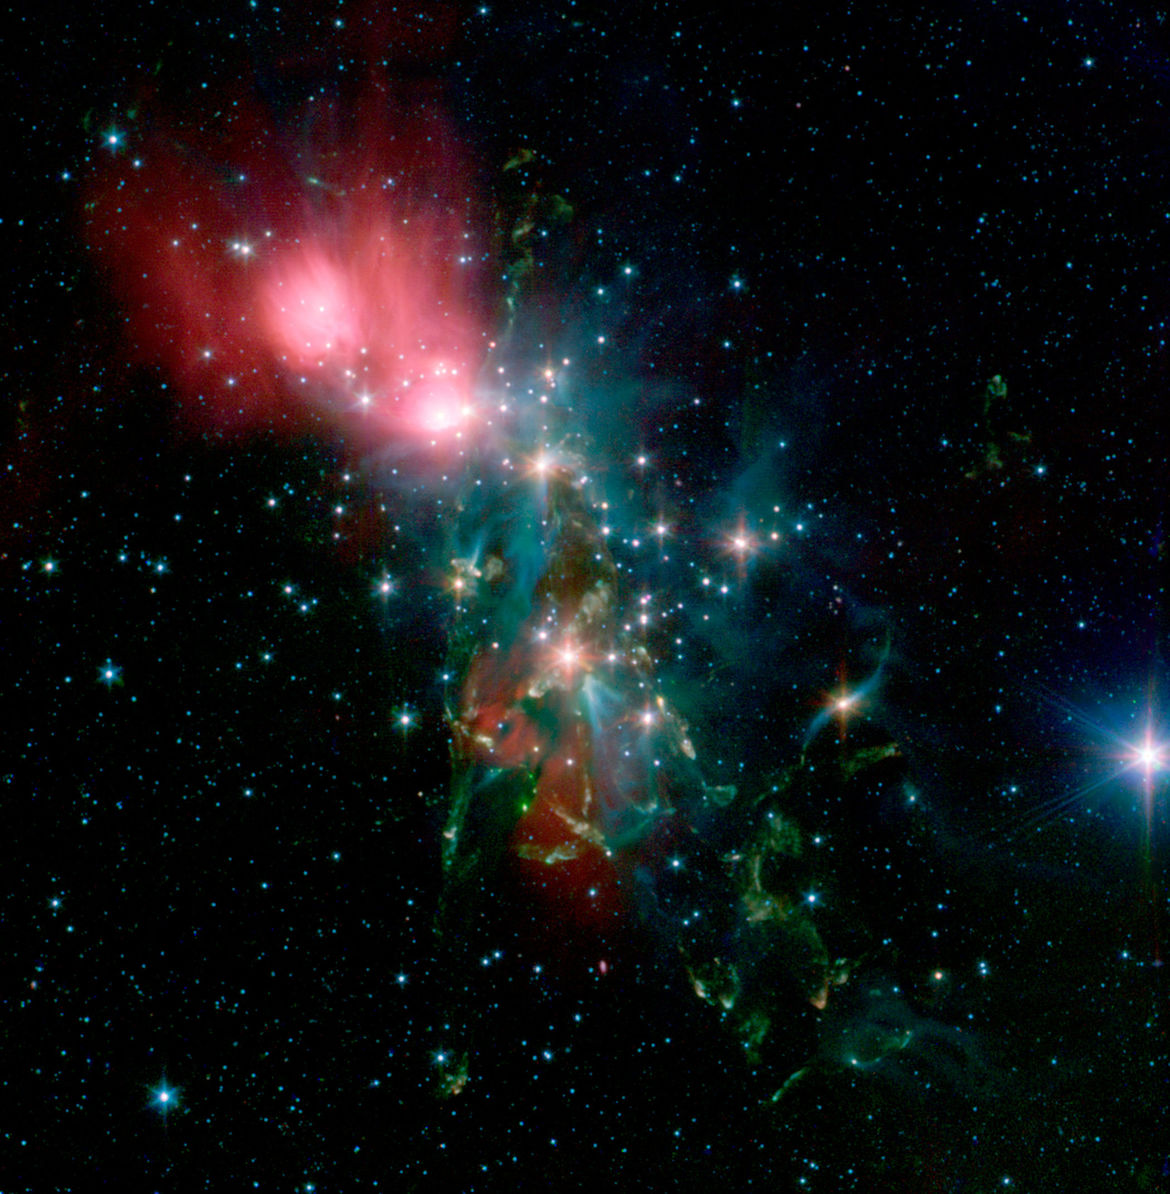 In infrared light seen by Spitzer Space Telescope, NGC 1333 shows copious young stars scattered throughout its gas. Credit: NASA/JPL-Caltech/R. A. Gutermuth (Harvard-Smithsonian CfA)